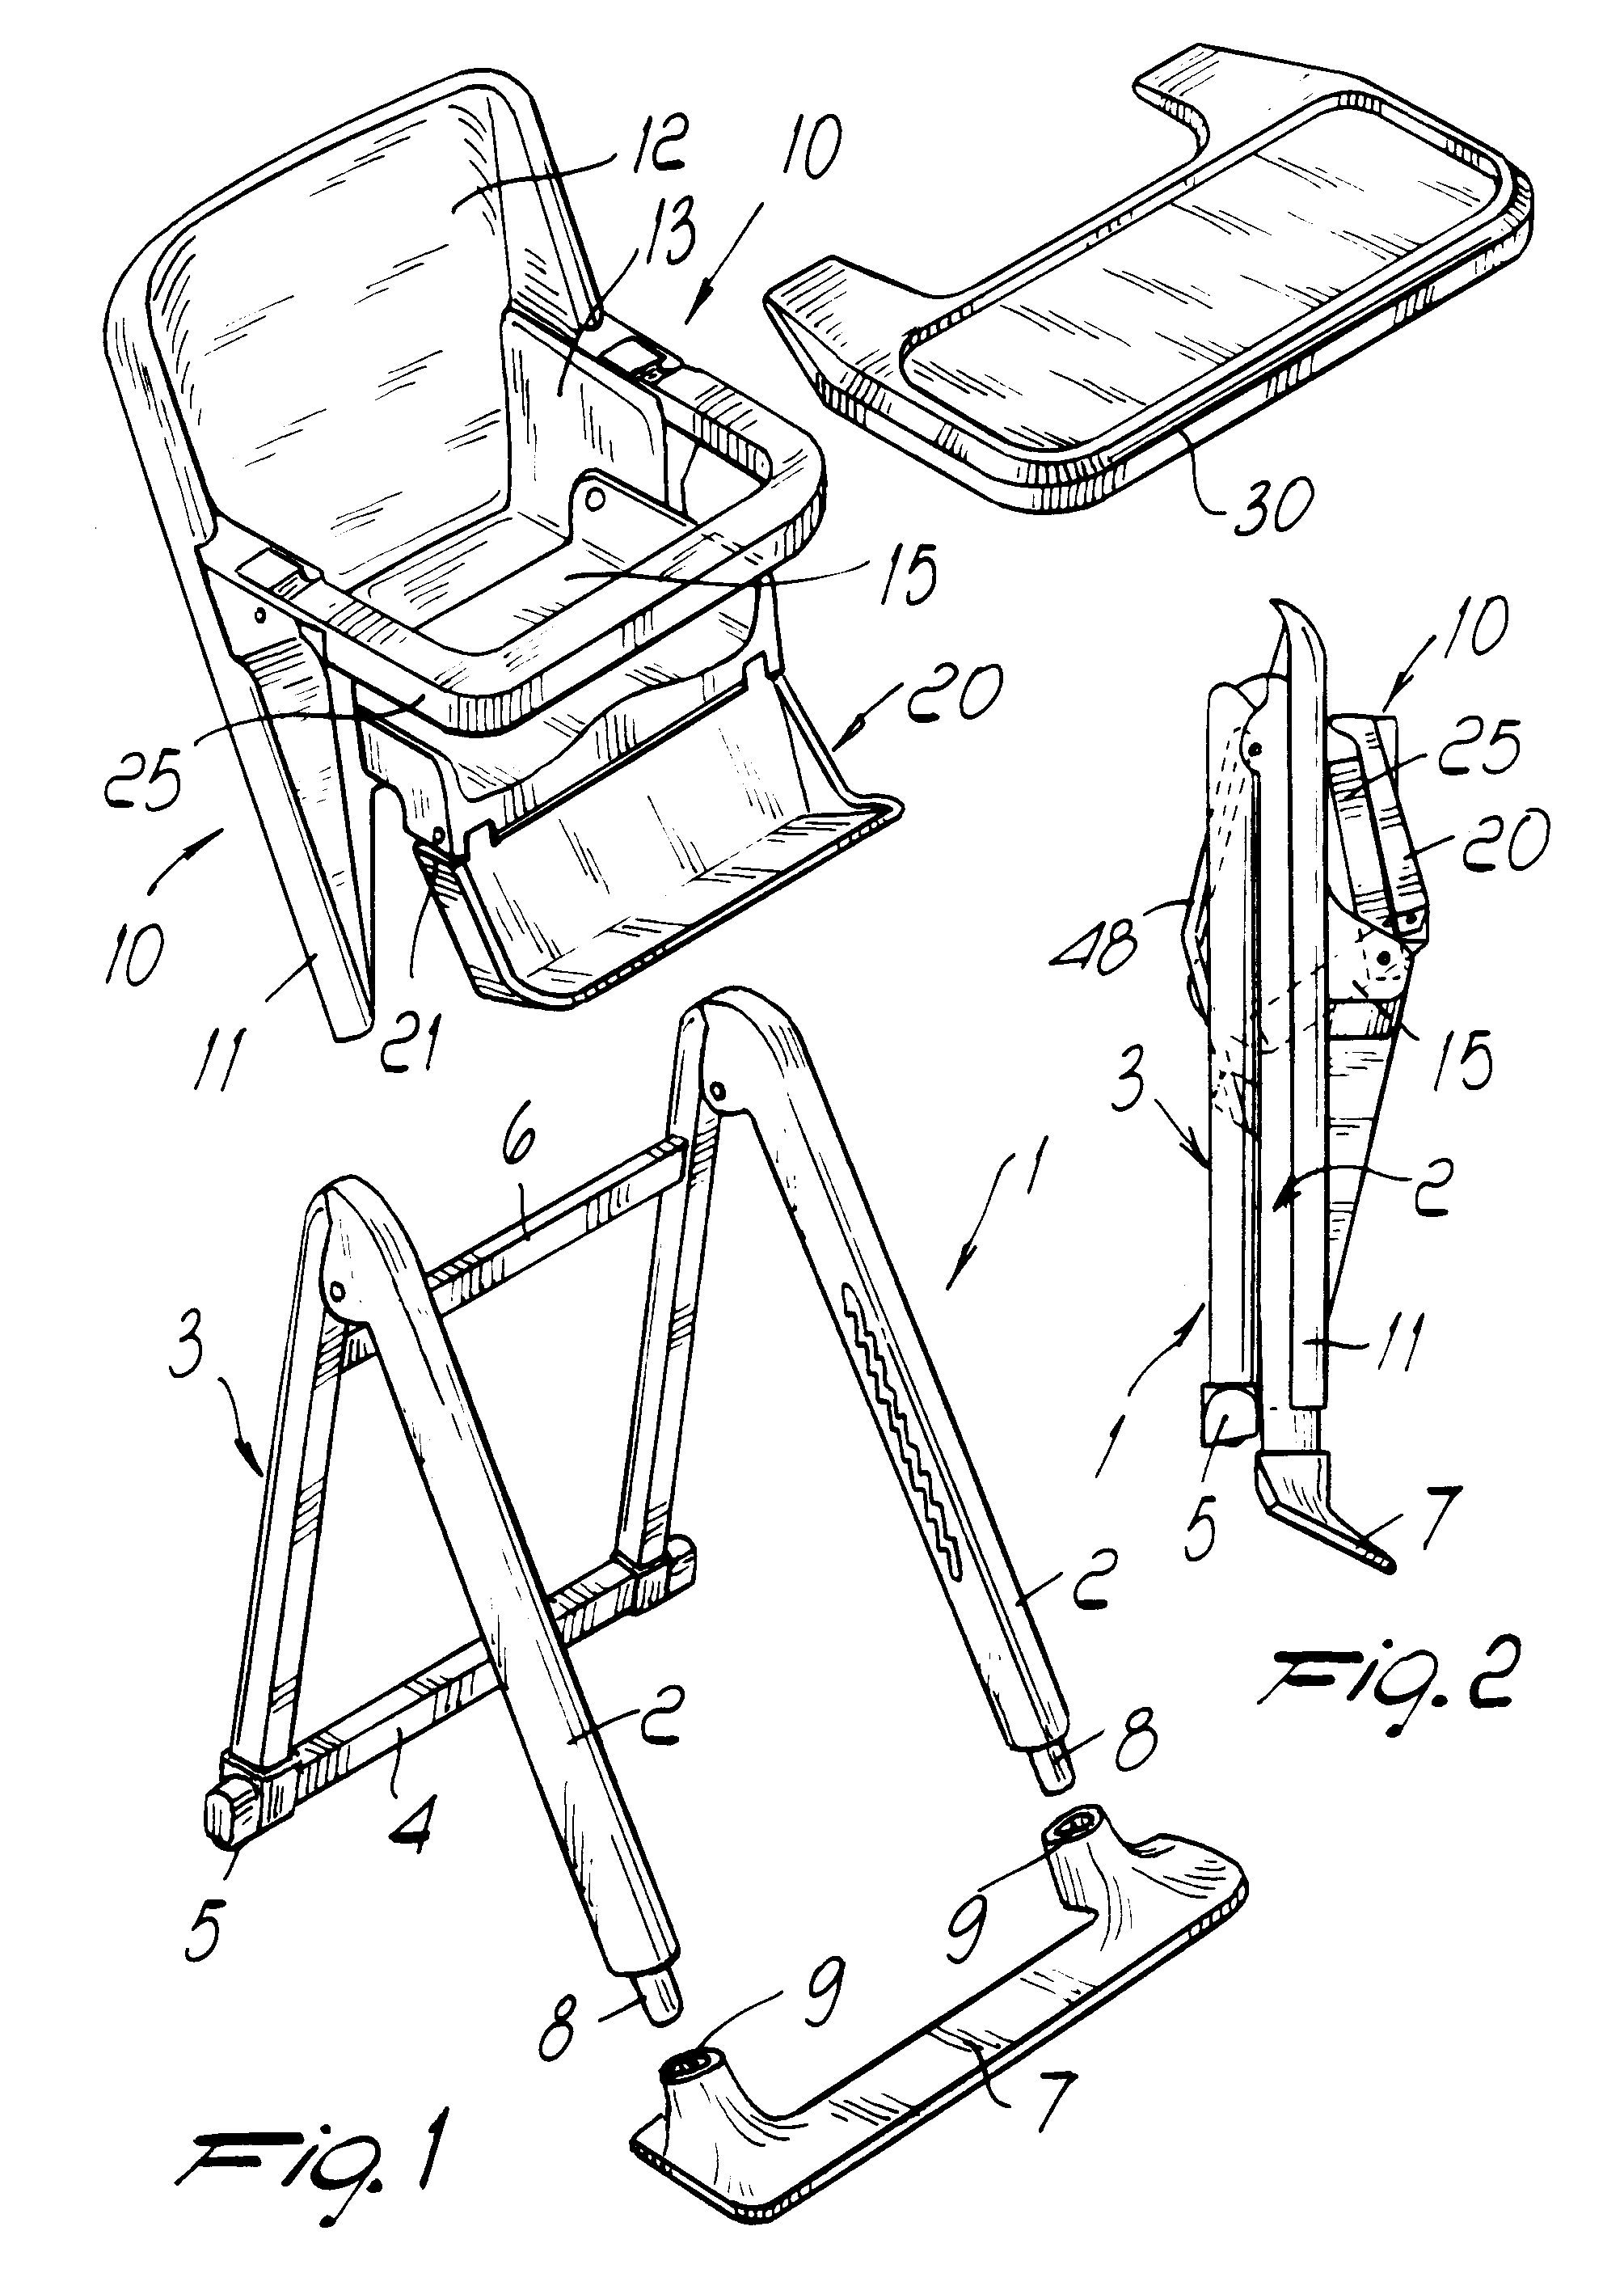 Patent EP0387764B1 Babys highchair with foldable structure – High Chair Dimensions